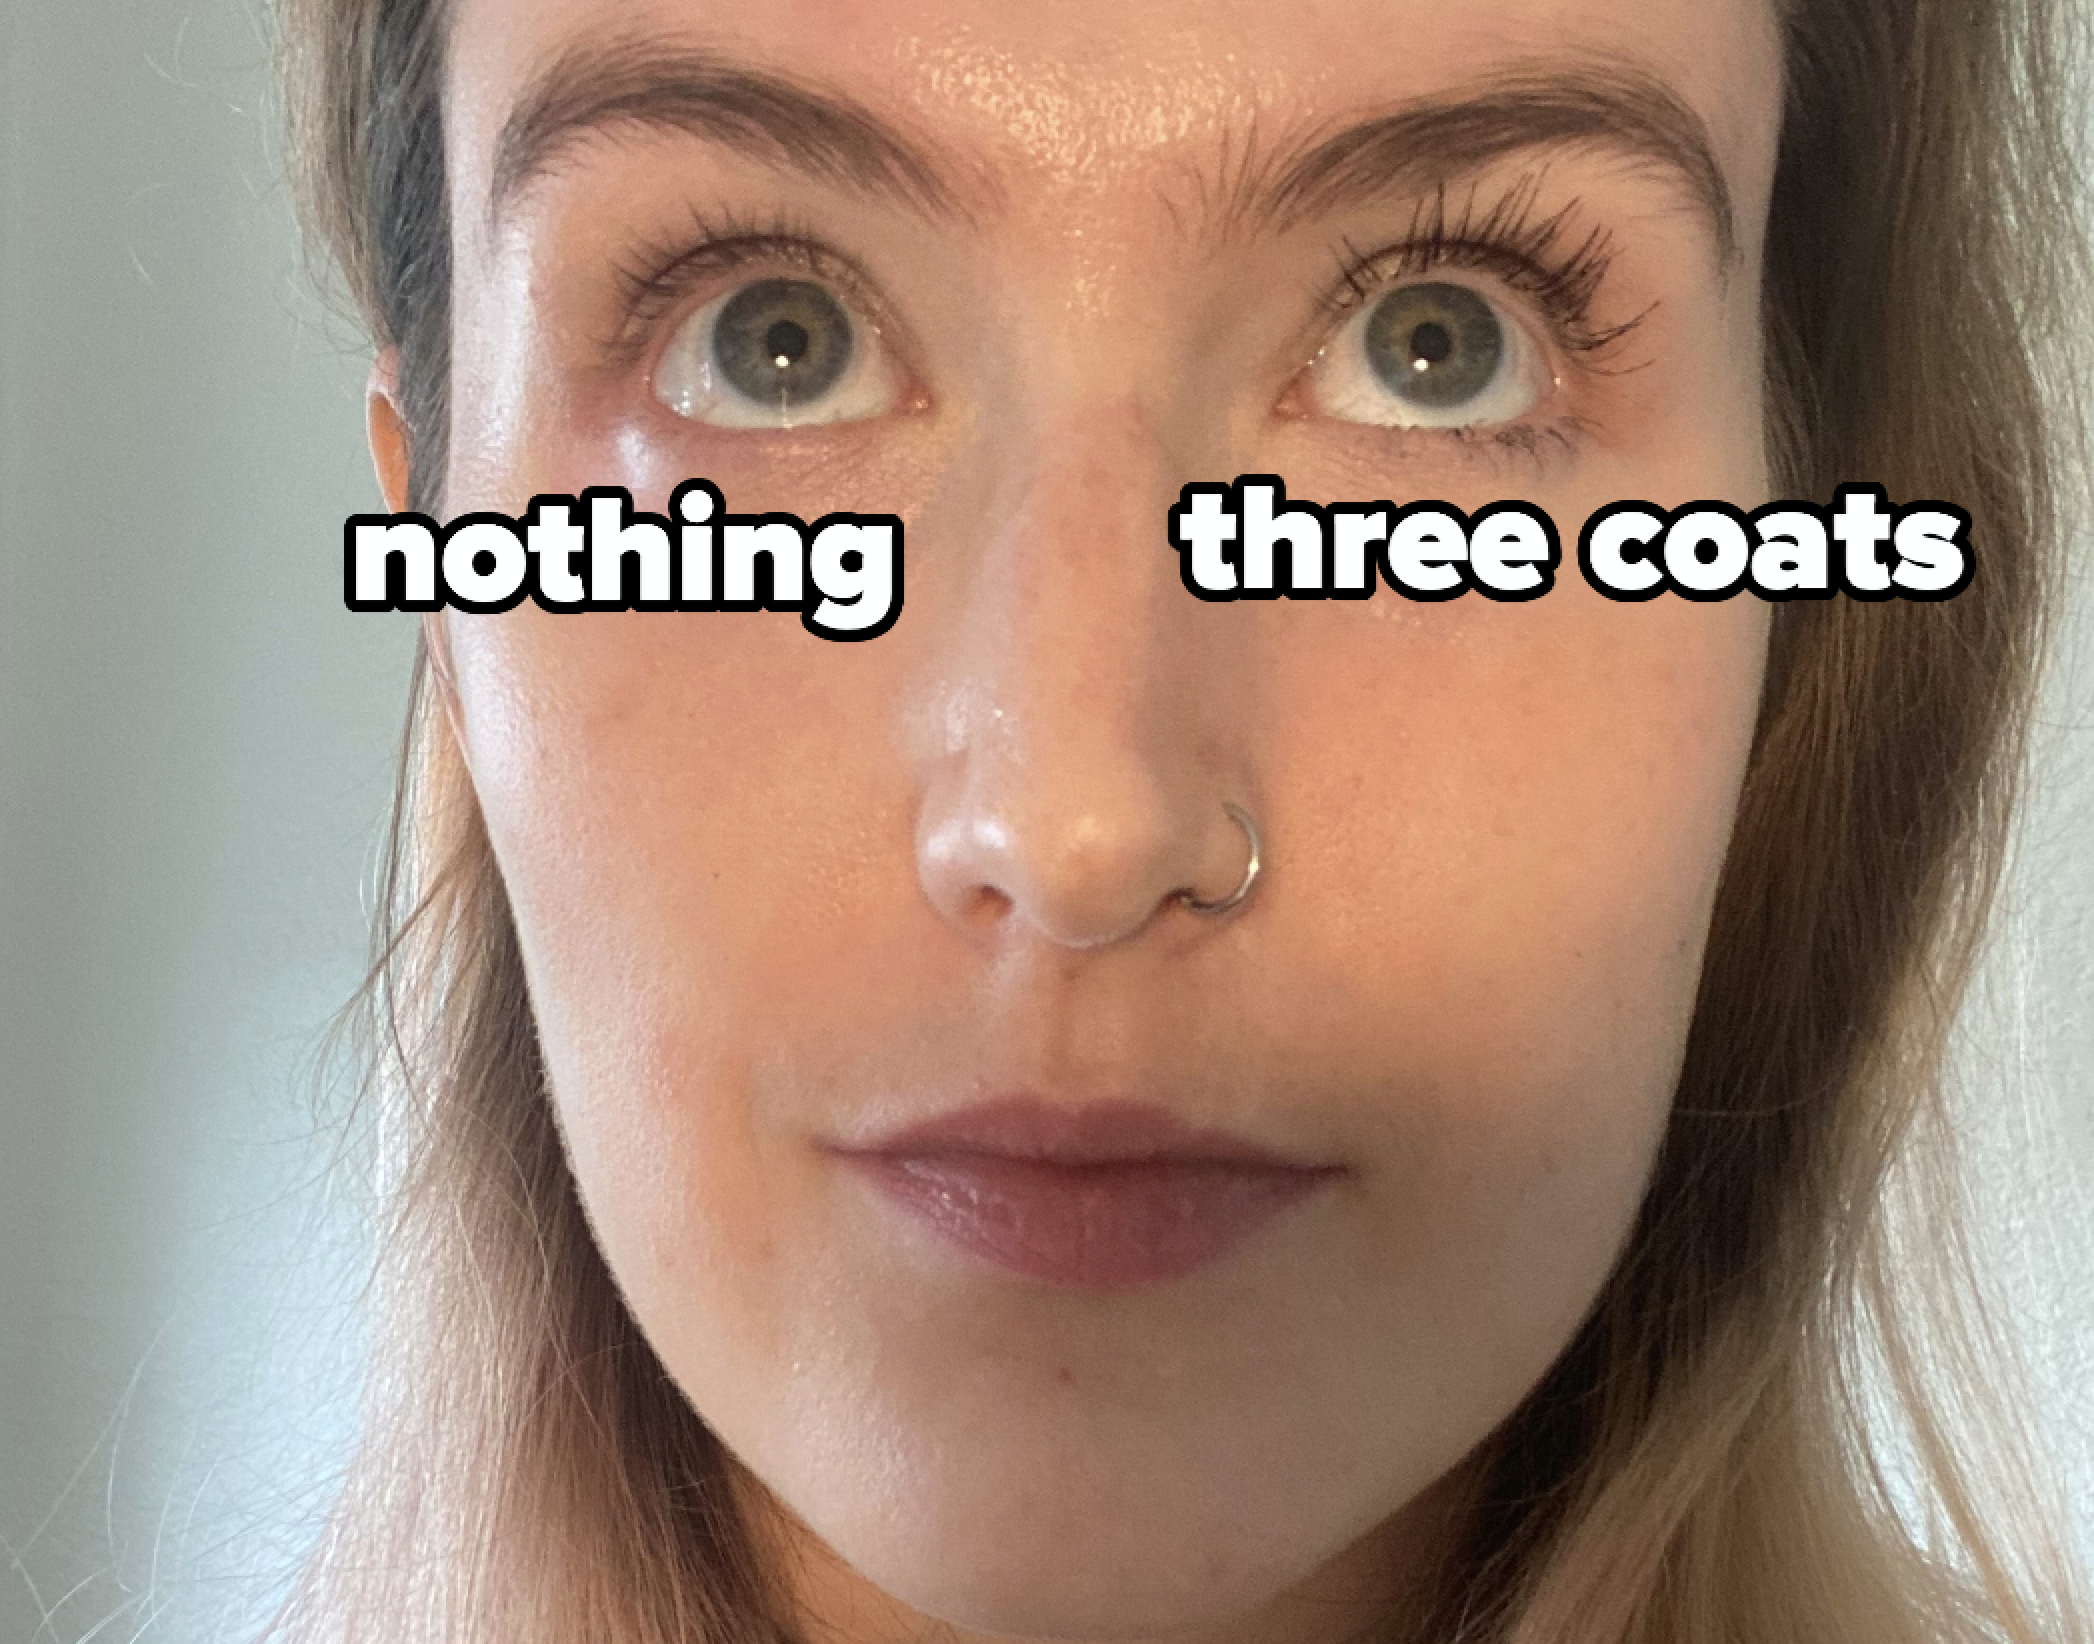 The lashes on my left eye looking longer, thicker,  and much darker than the lashes on my right eye